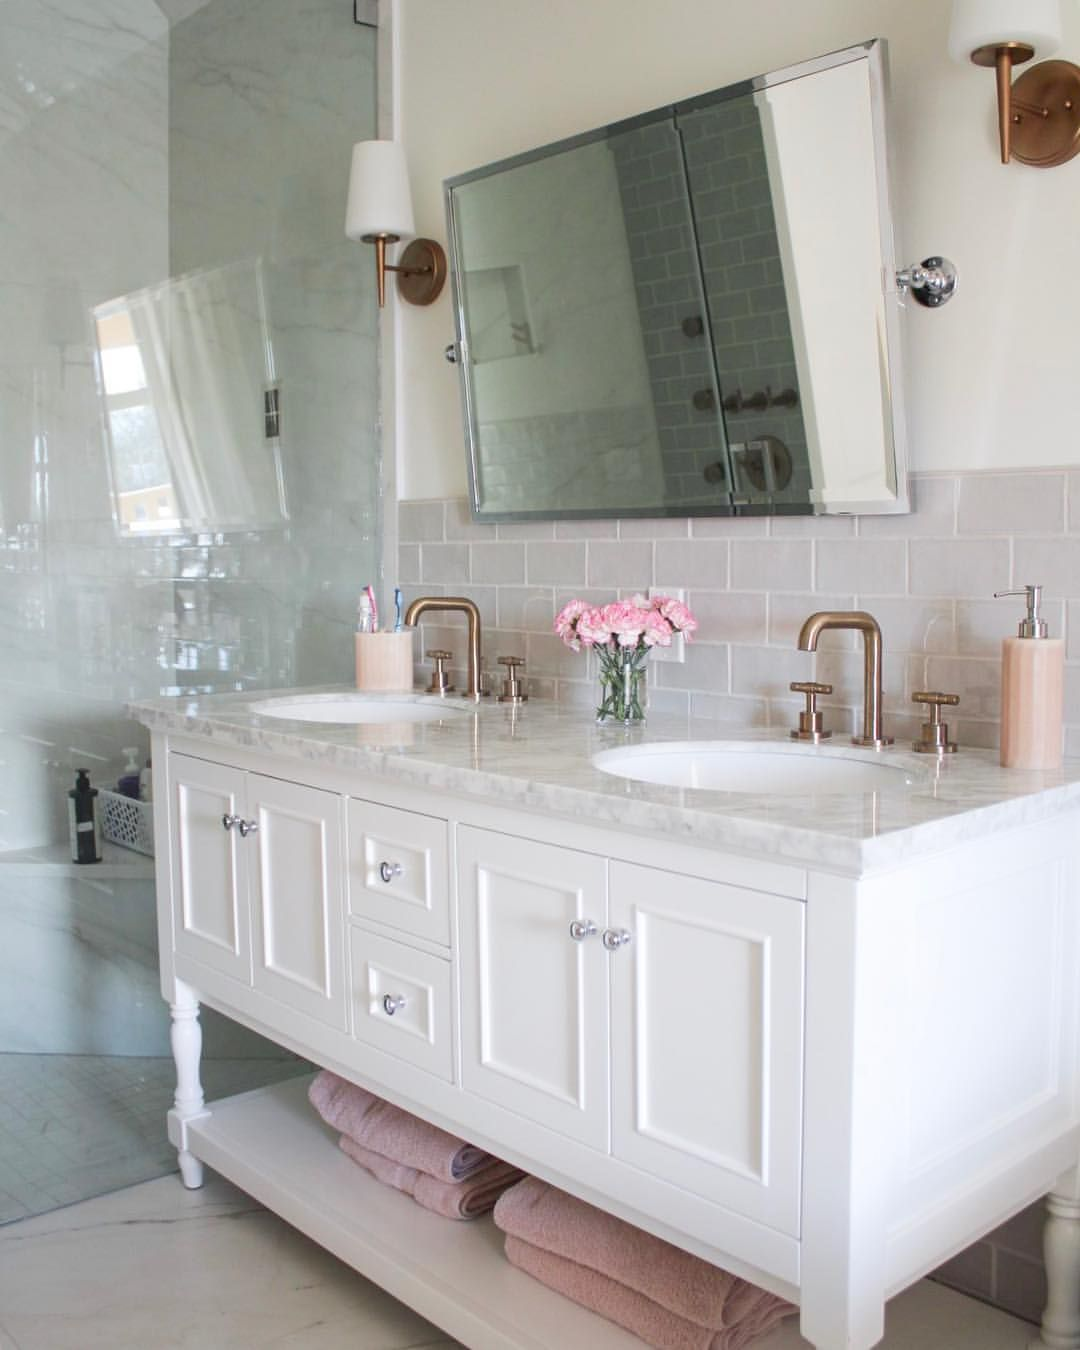 master bath details get you a man who's not afraid of a